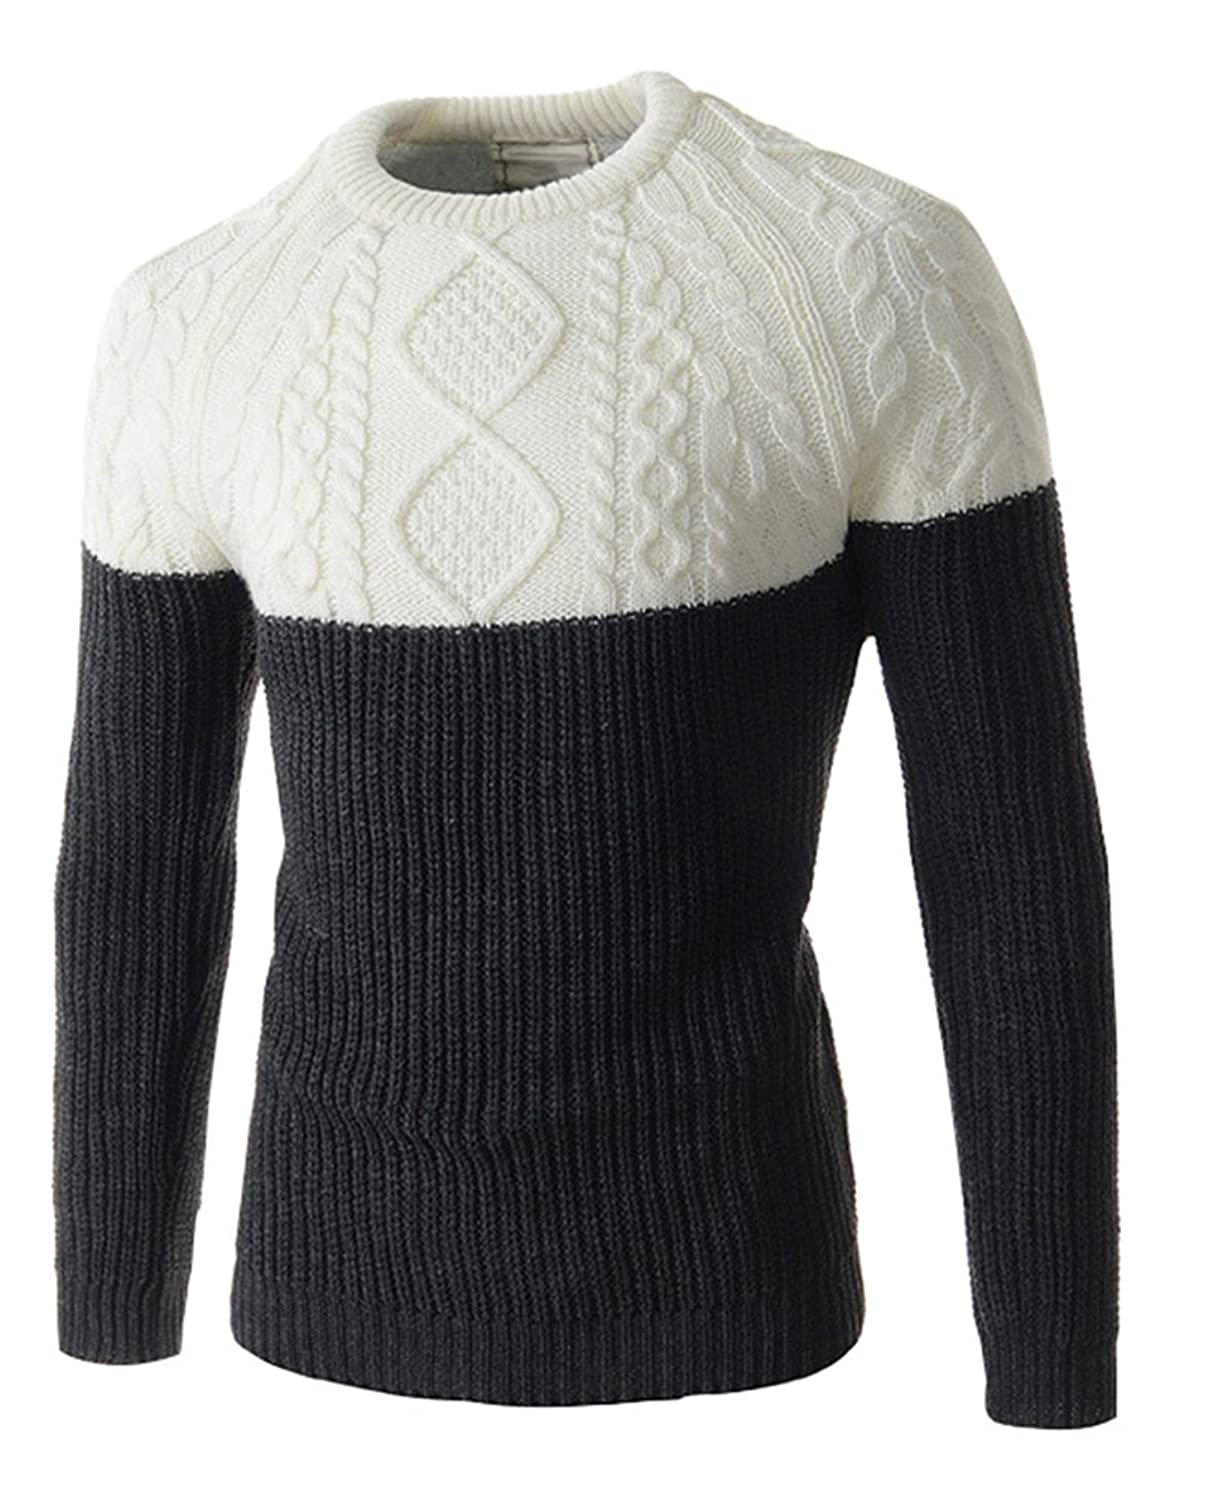 Molly Men's Casual British Style Cable Knit Sweater Pullover